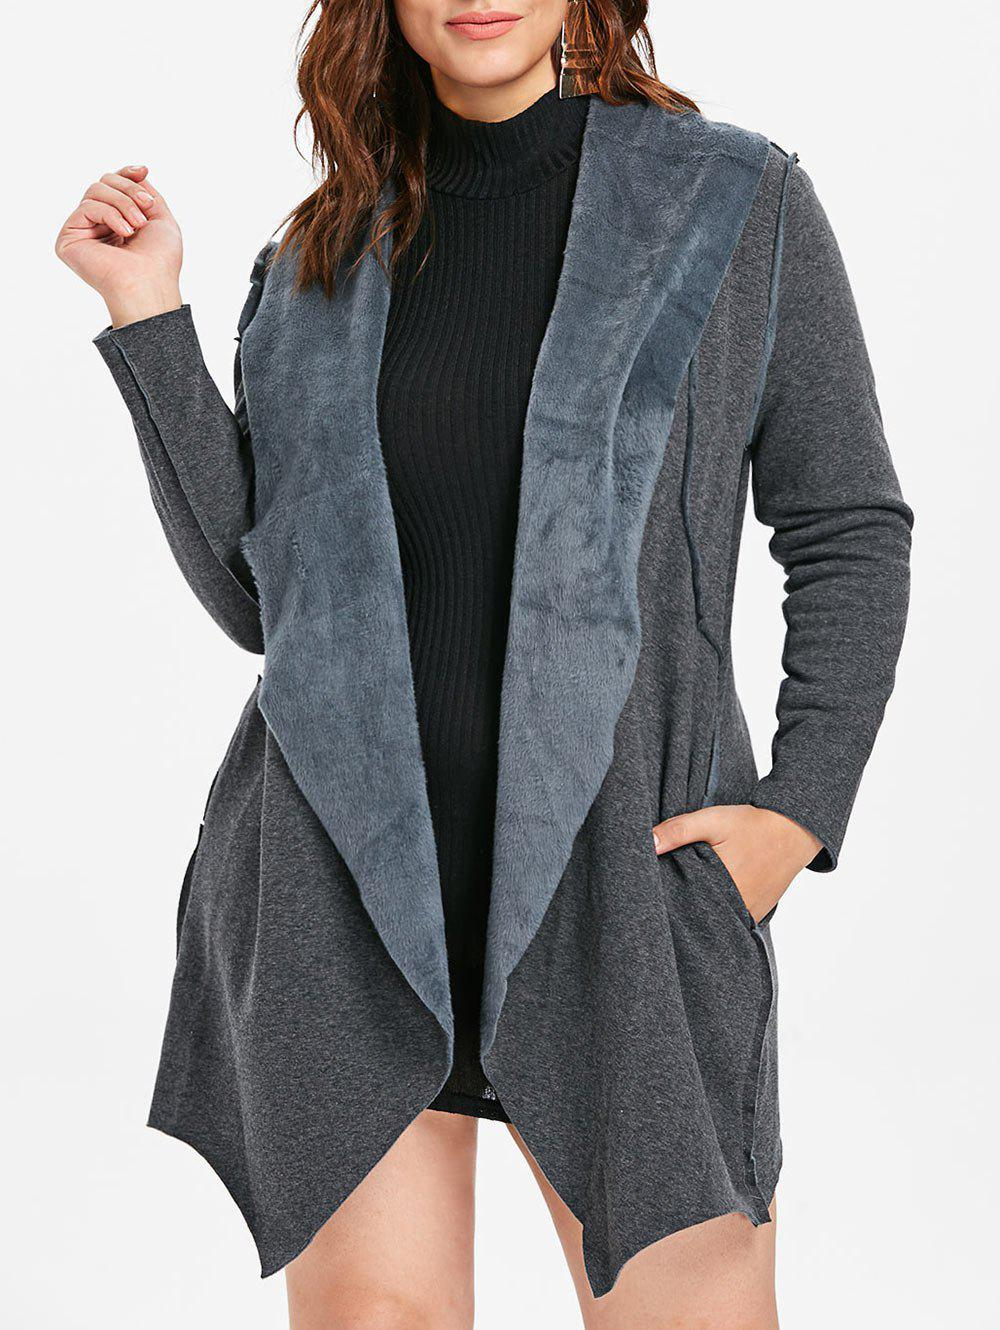 New Asymmetrical Plus Size Coat